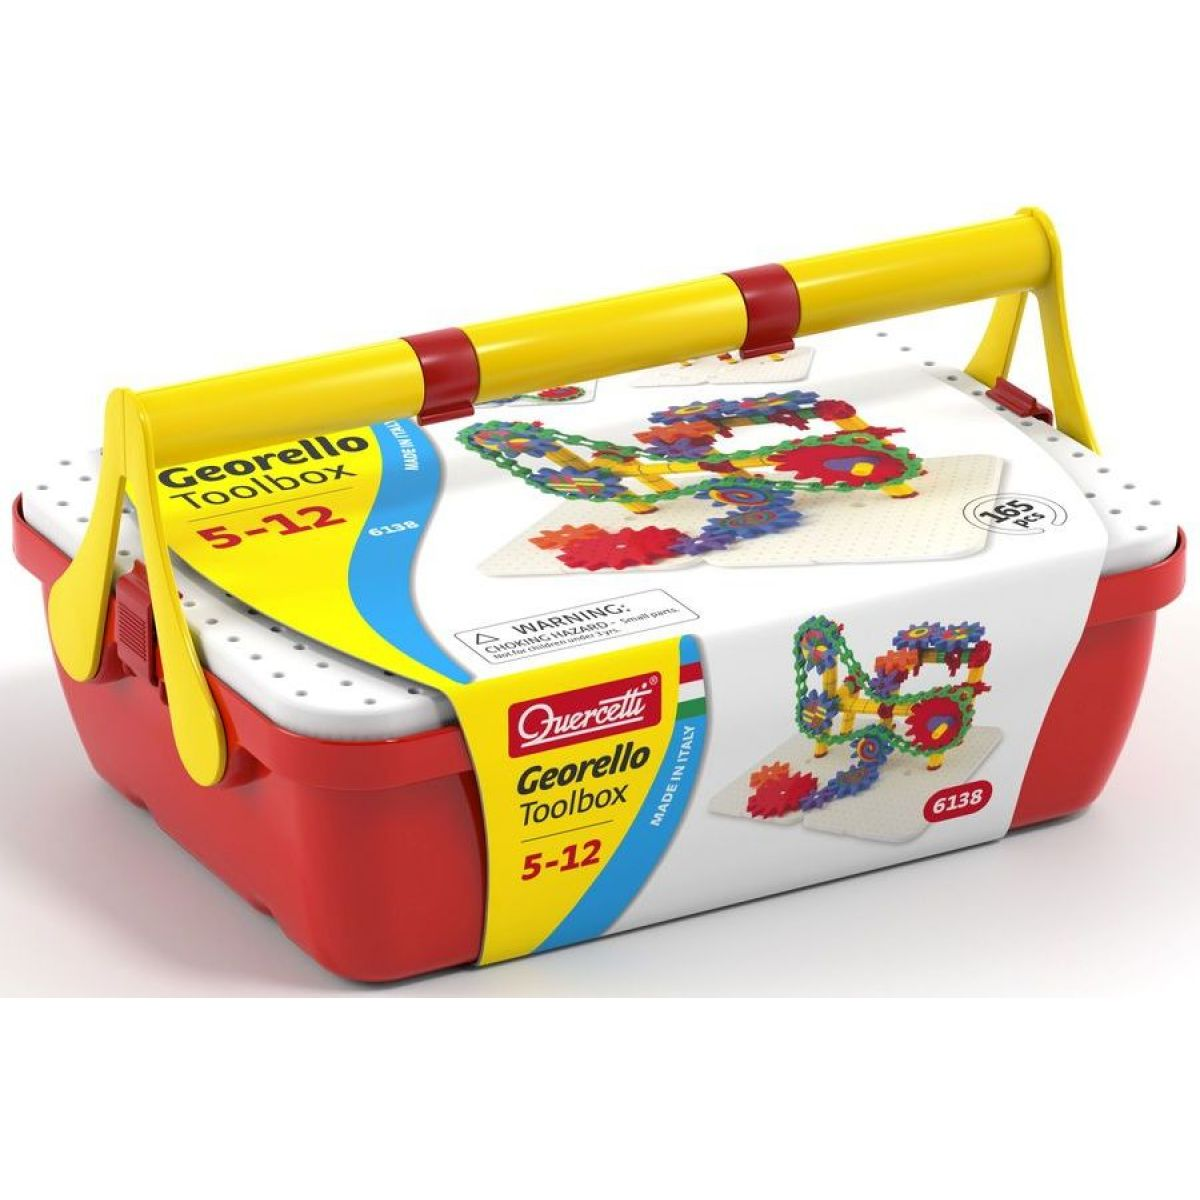 Quercetti Georello Toolbox